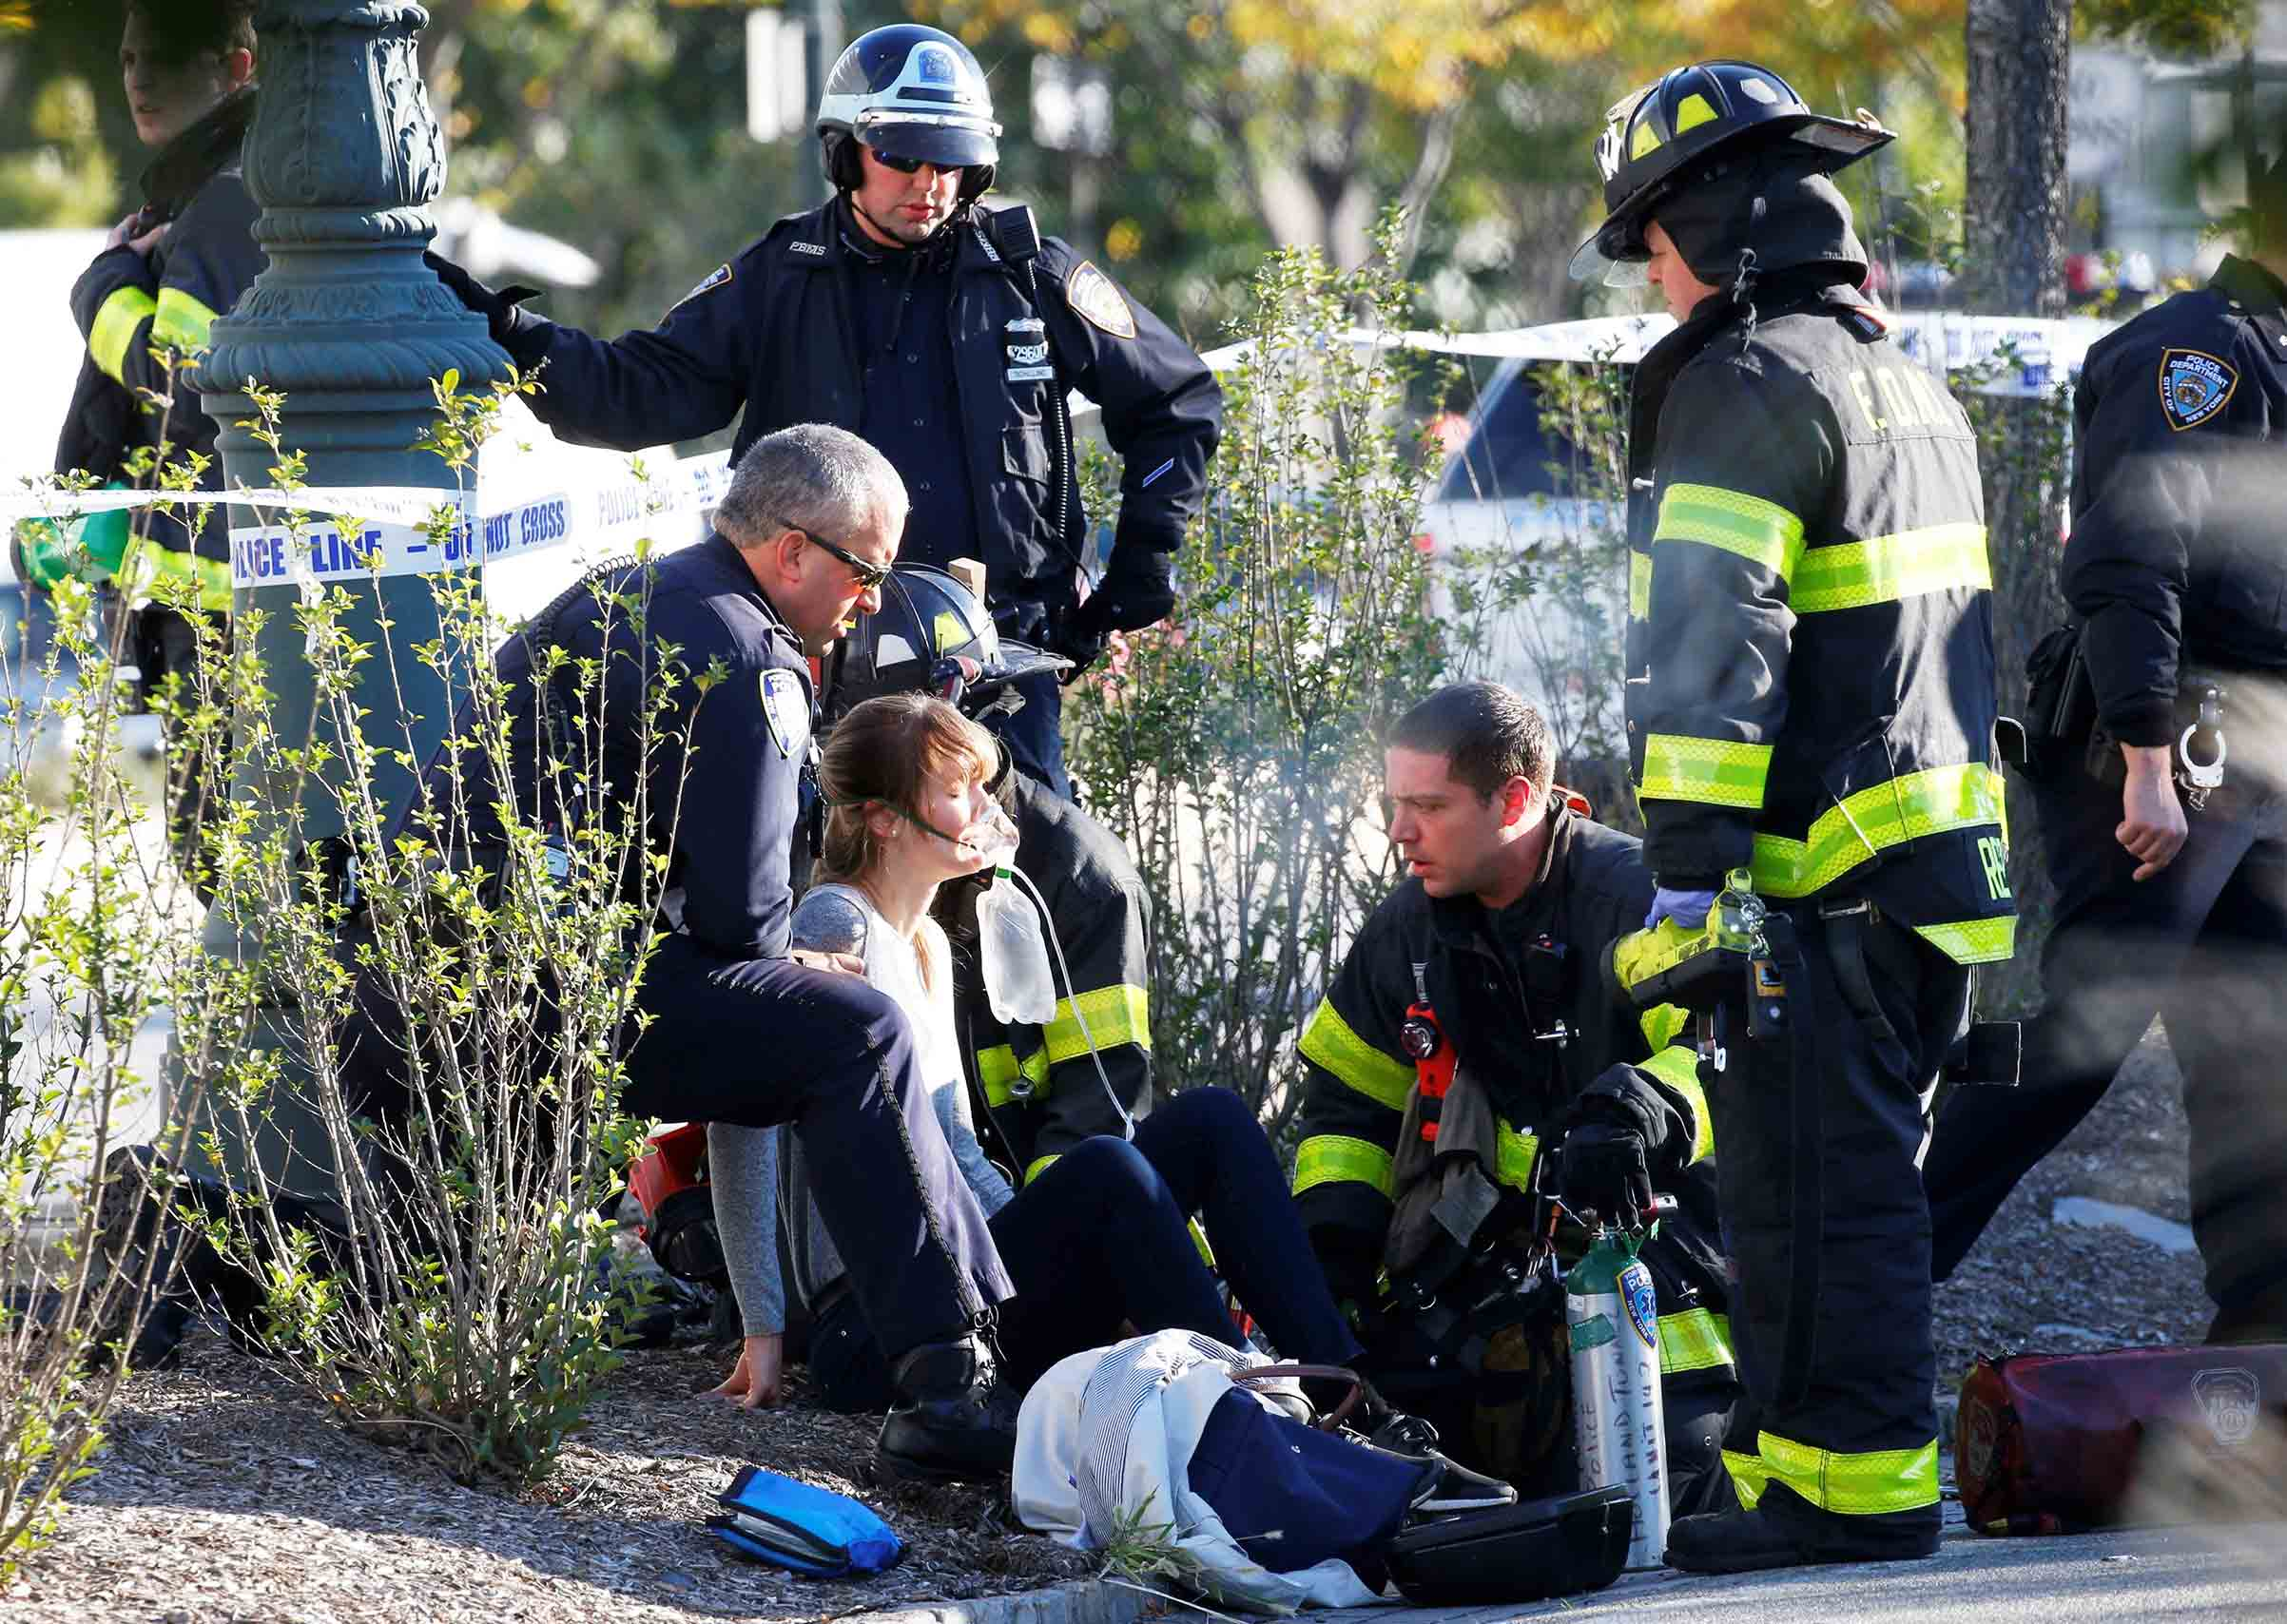 An injured woman is given oxygen by first responders after the terrorist attack that killed eight people along the West Side Highway in Lower Manhattan on Oct. 31